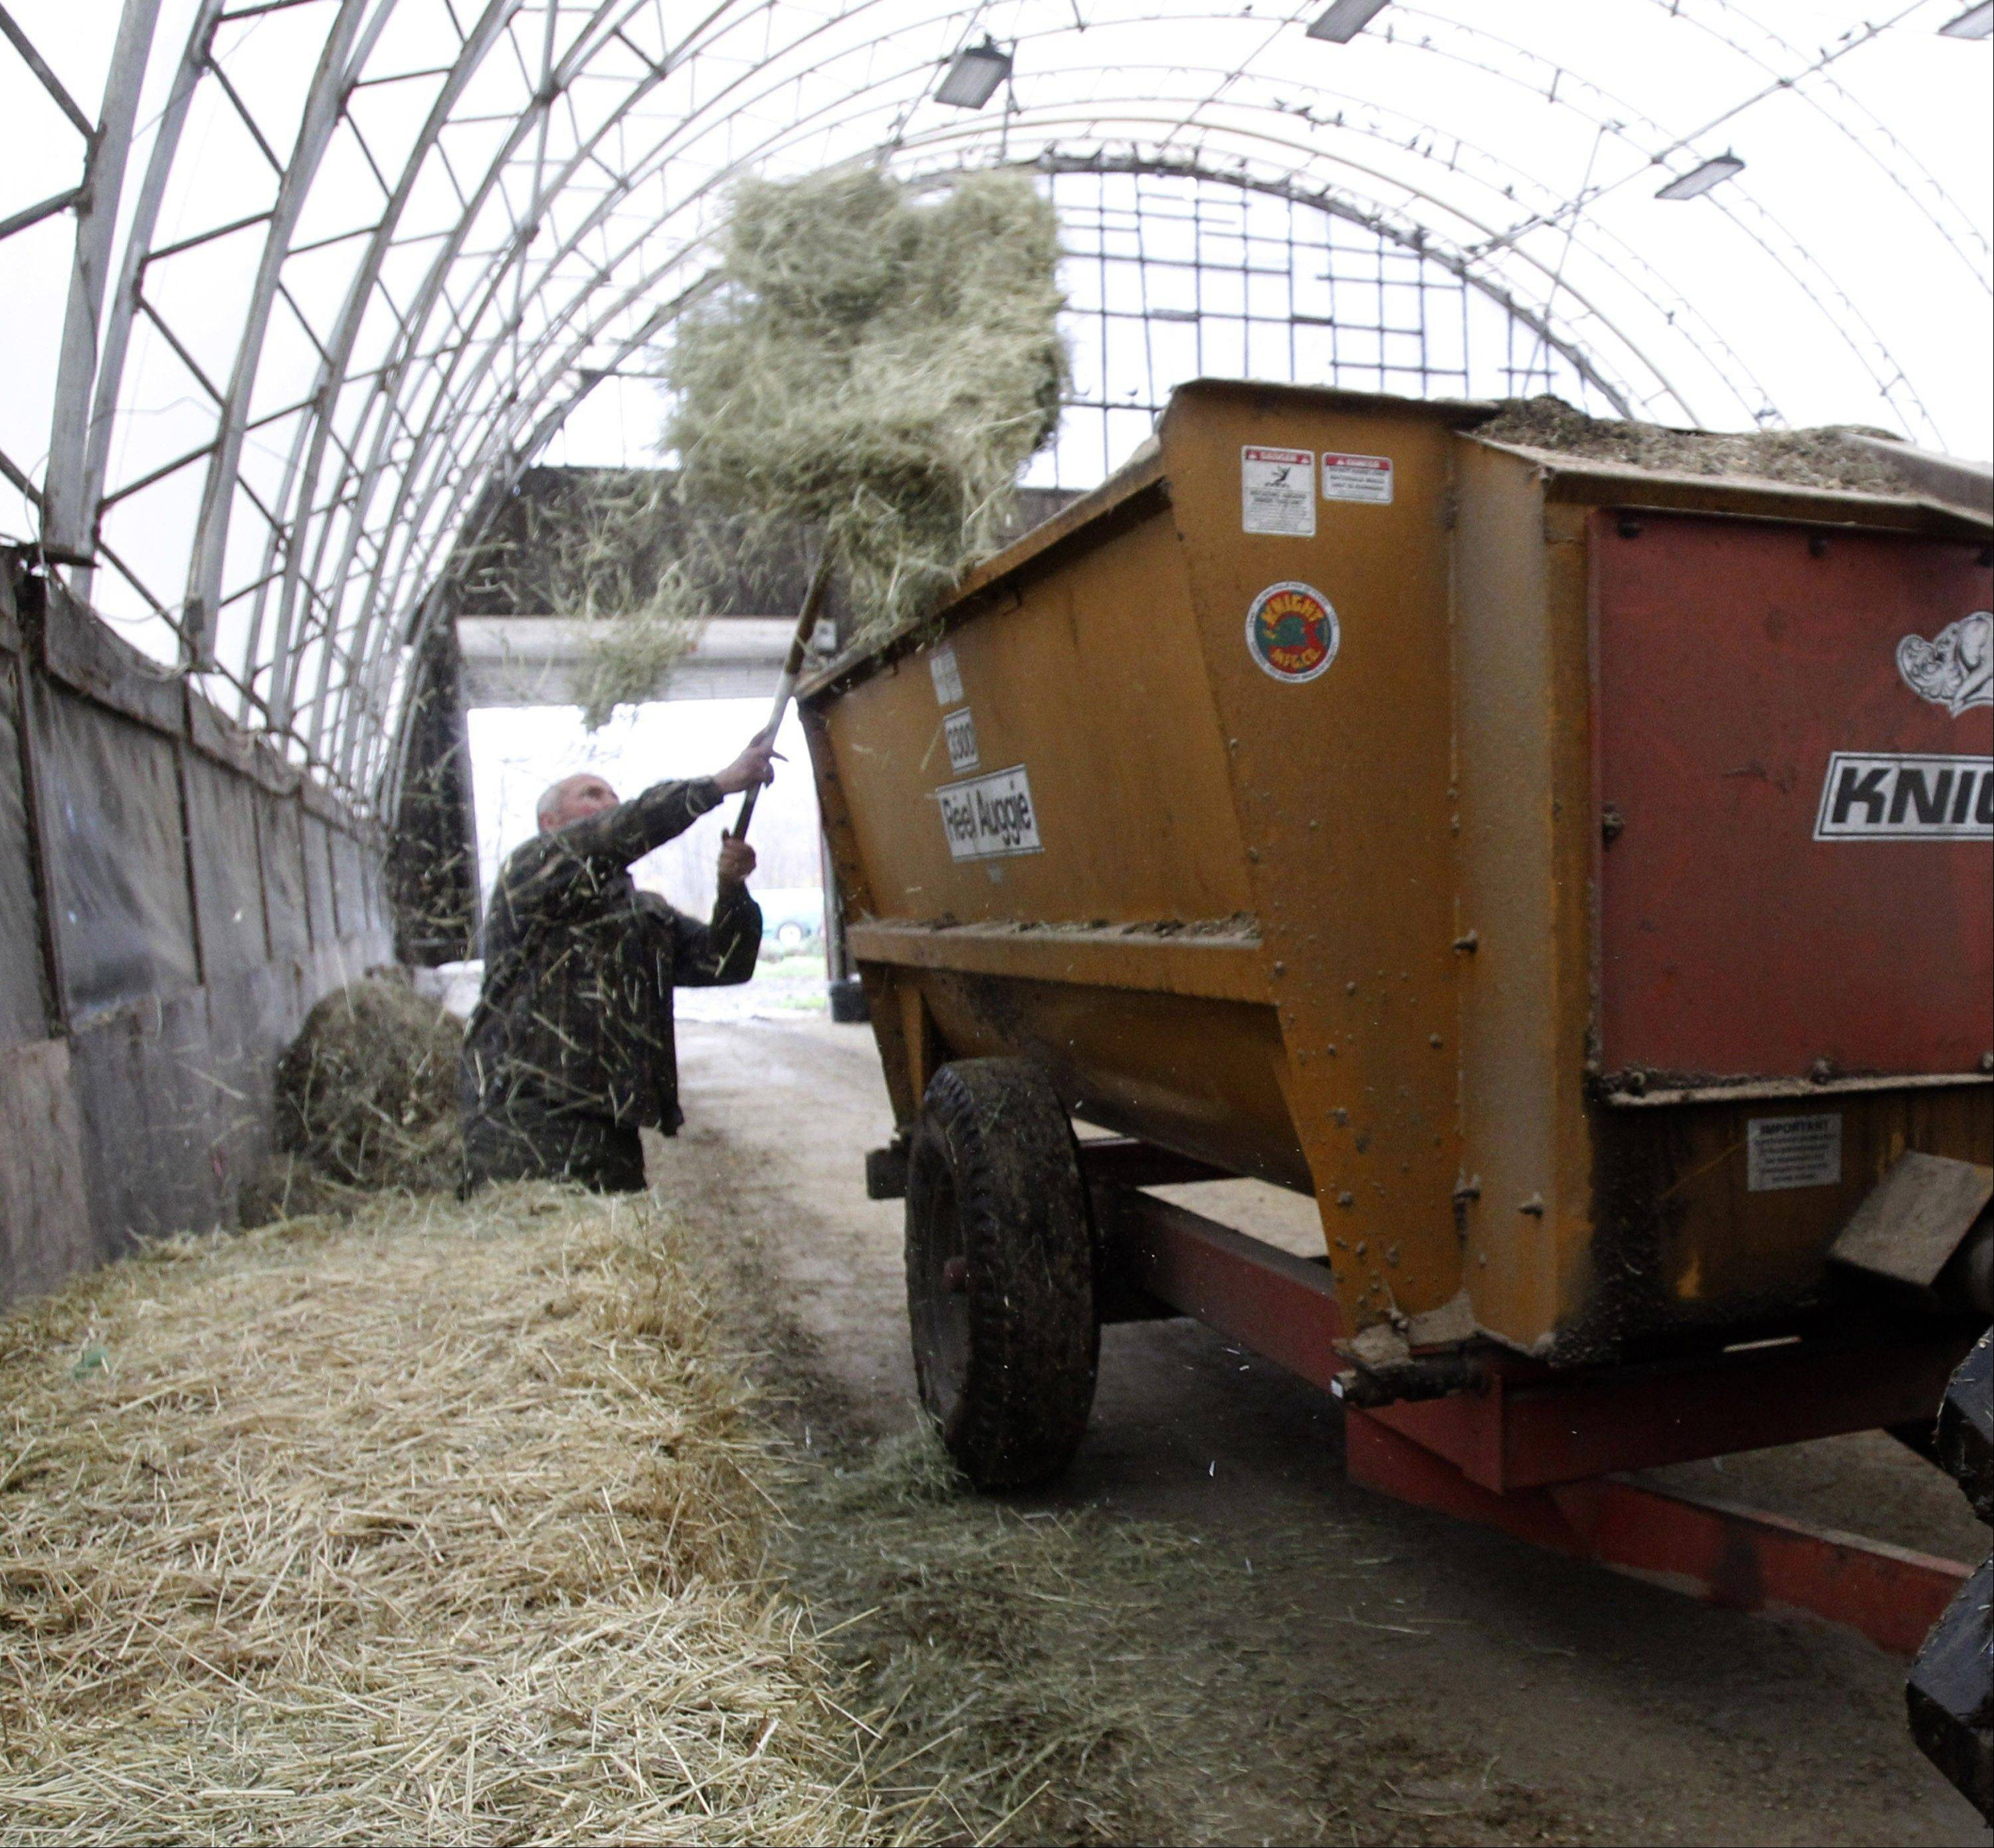 Farmer Myles Goodrich loading a feed wagon at his farm in Danville, Vt. House Repub